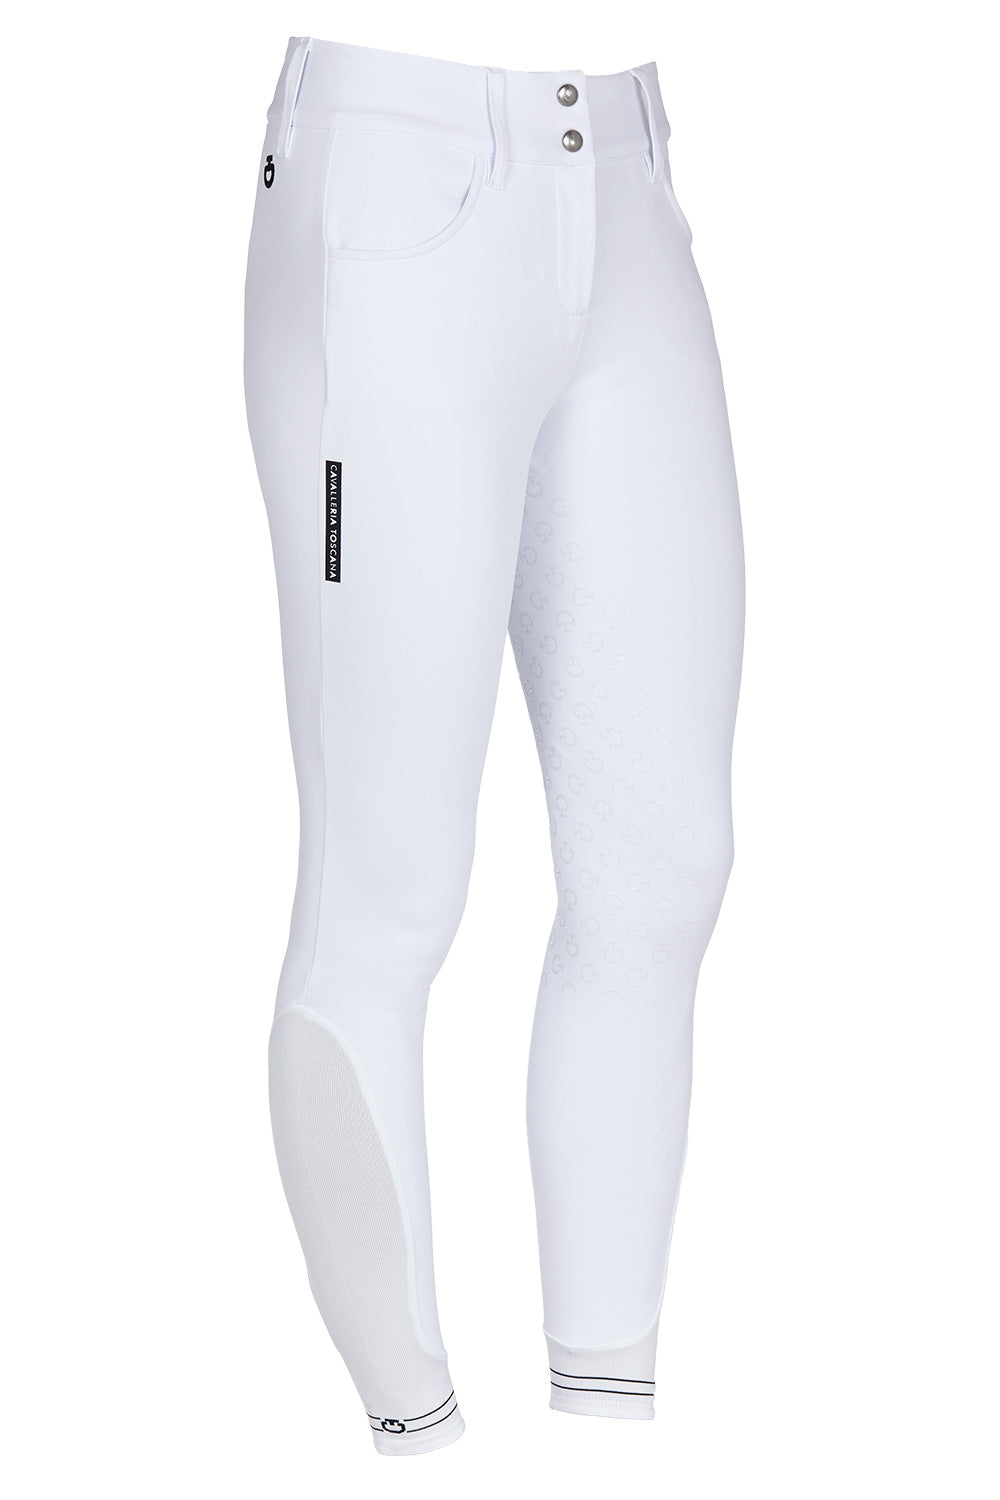 Cavalleria Toscana American Breeches with Logo Tape White 0001 - Luxe EQ